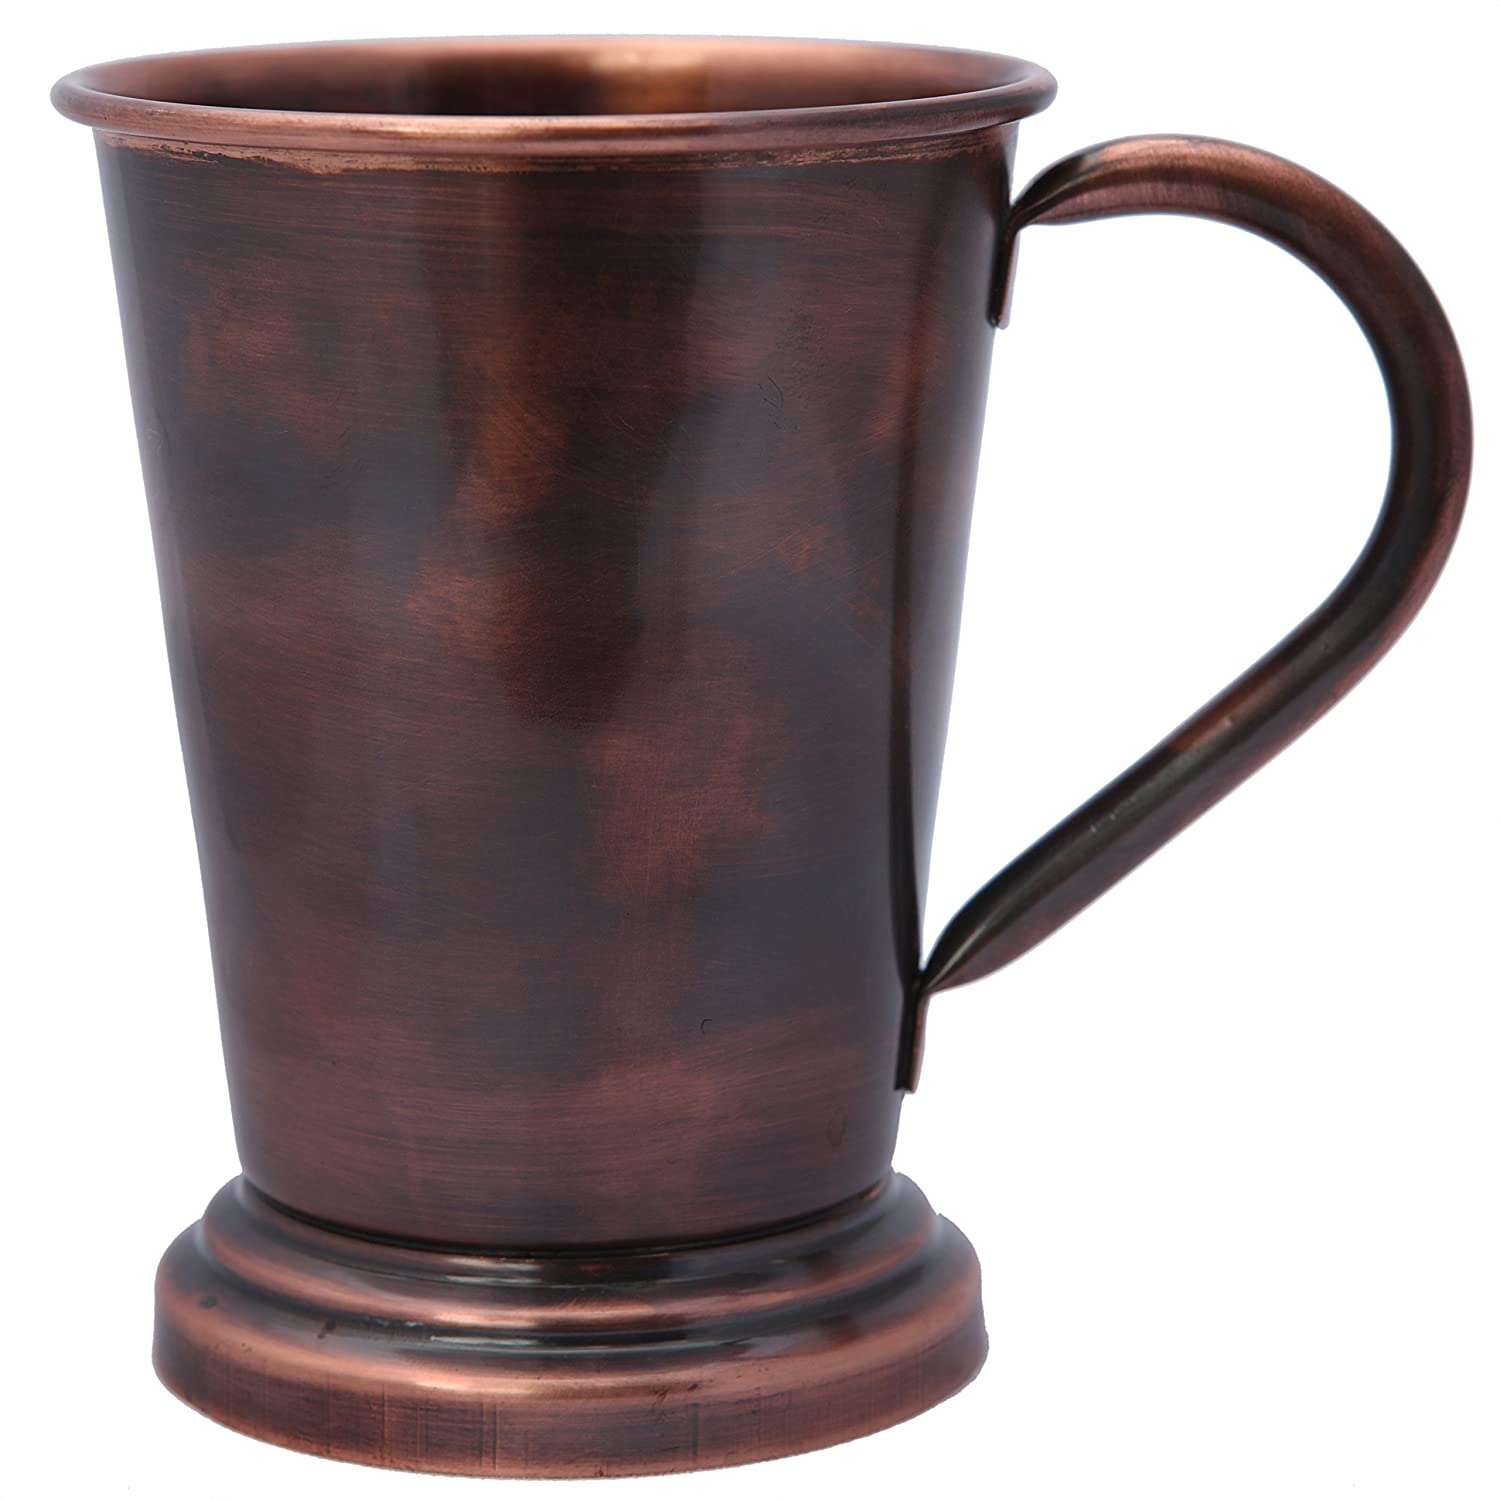 Melange 100% Authentic Copper Artisan Collection Moscow Mule Mug, Antique Finish, Size-16 oz, Set of 4 Mugs 724190532836